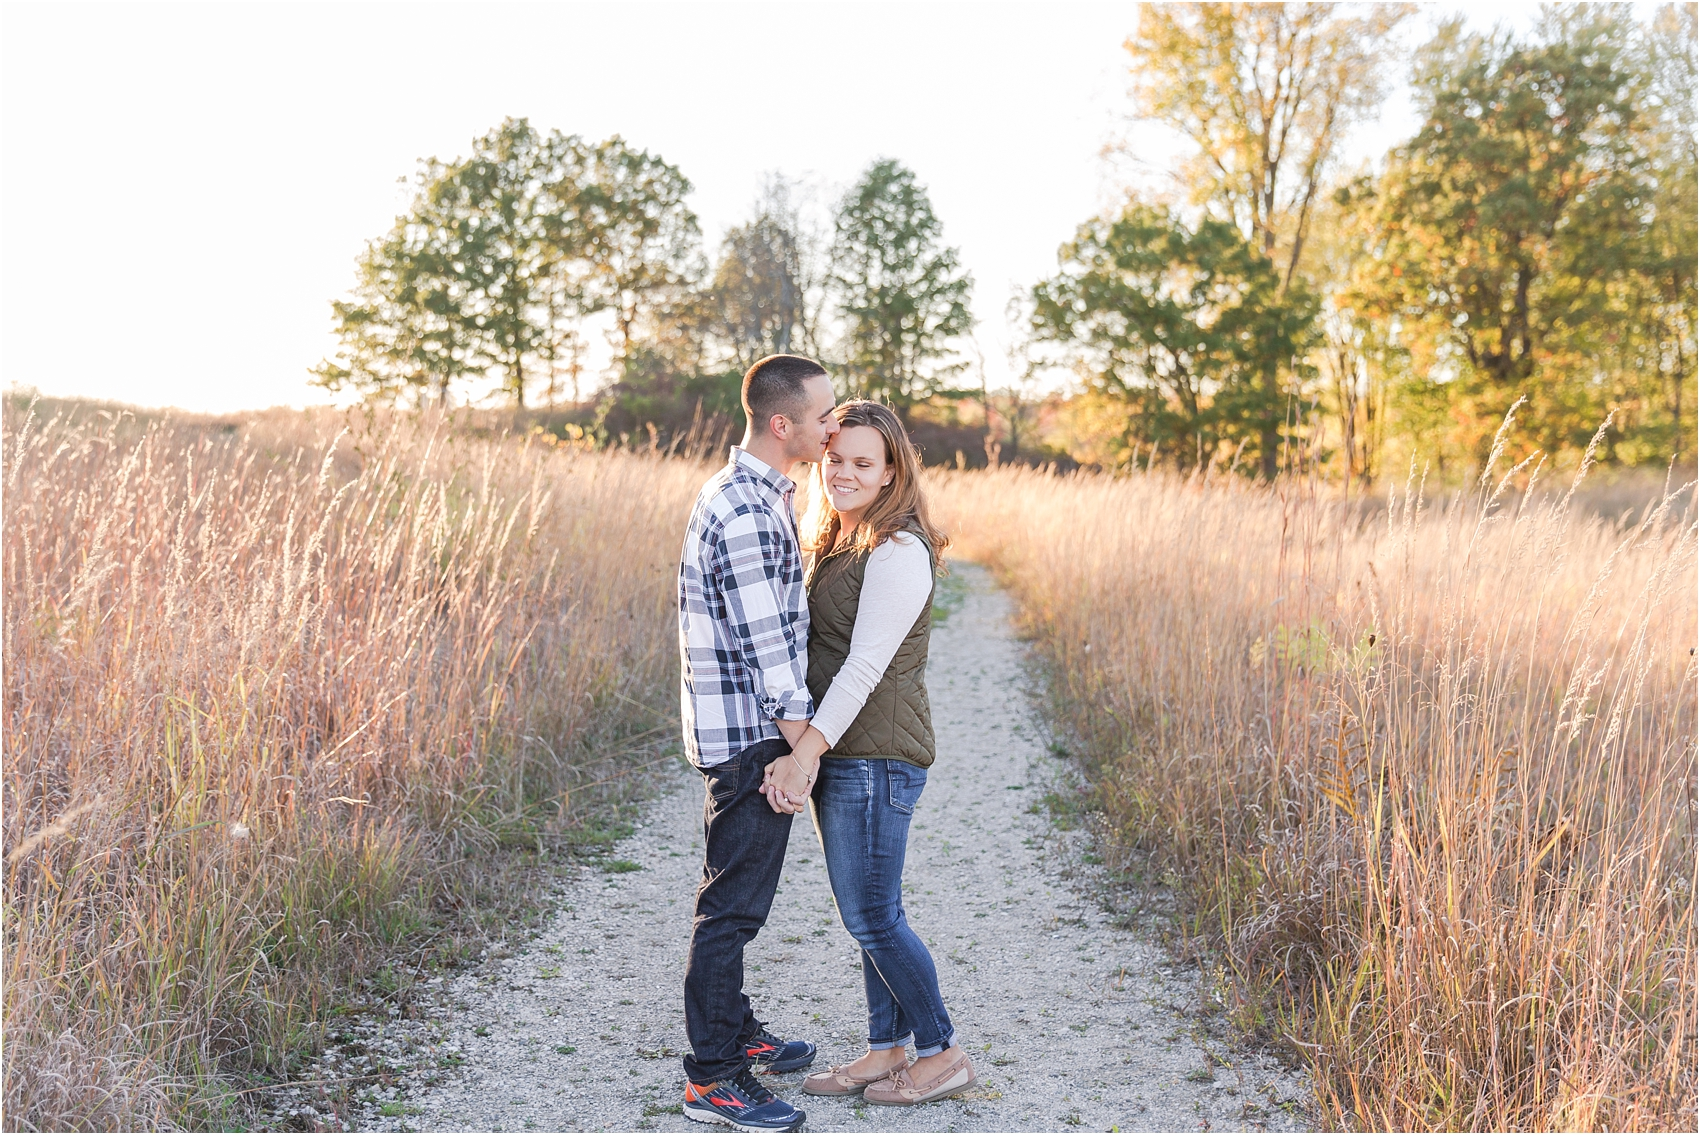 romantic-fall-engagement-photos-at-indian-springs-metropark-in-clarkston-mi-by-courtney-carolyn-photography_0015.jpg